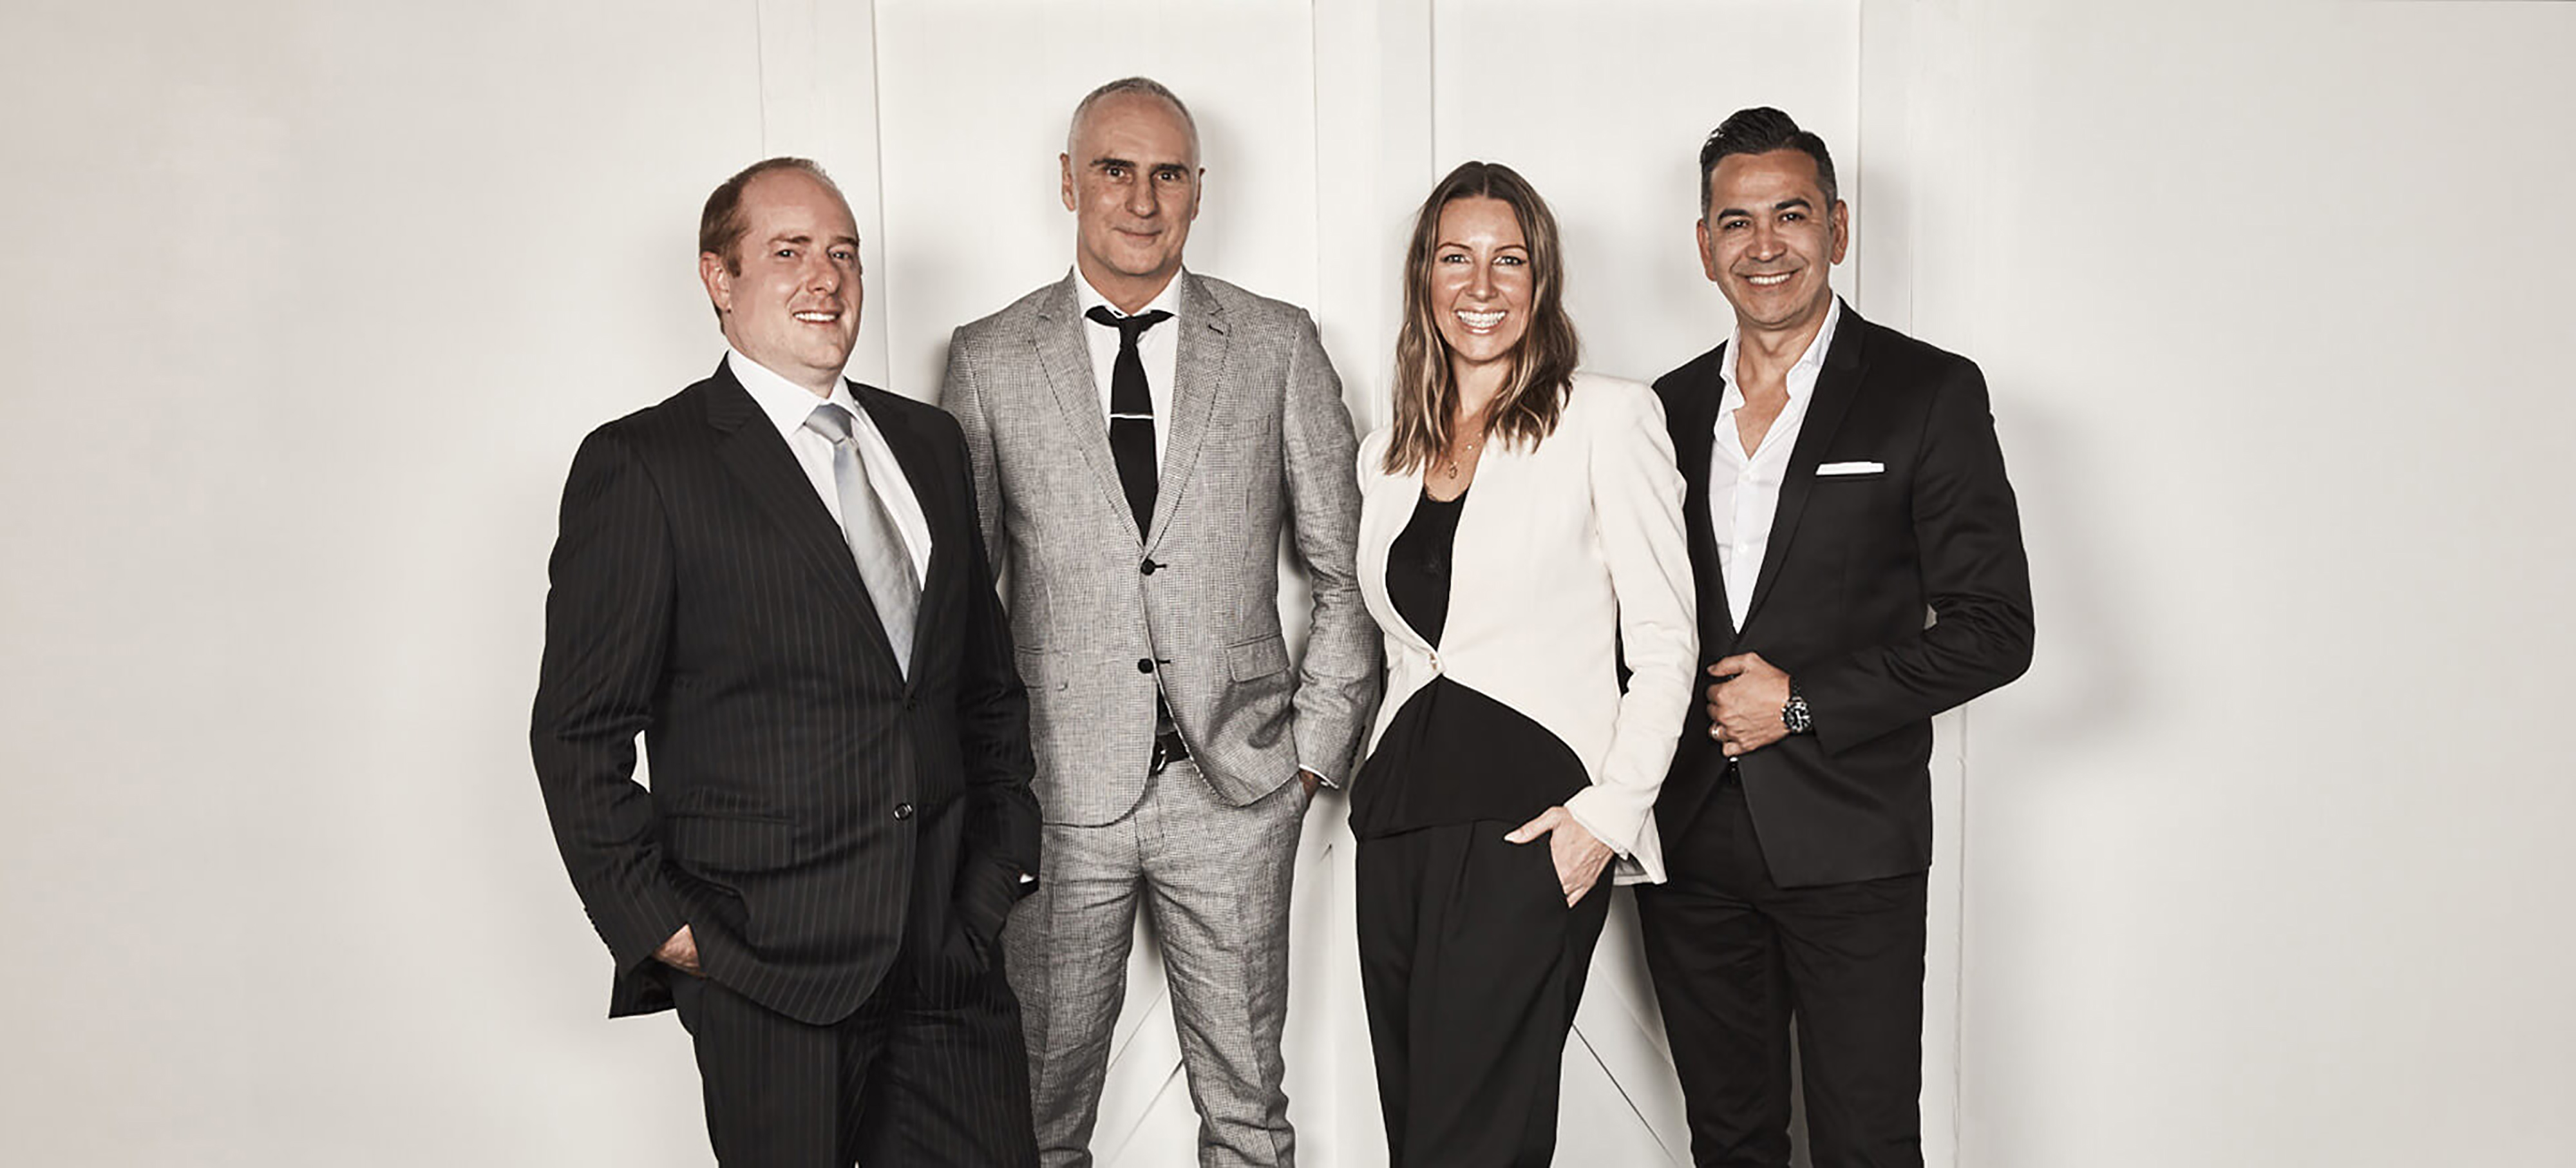 Digital agency Ping Works merges with creative agency Canvas Group to form new agency District